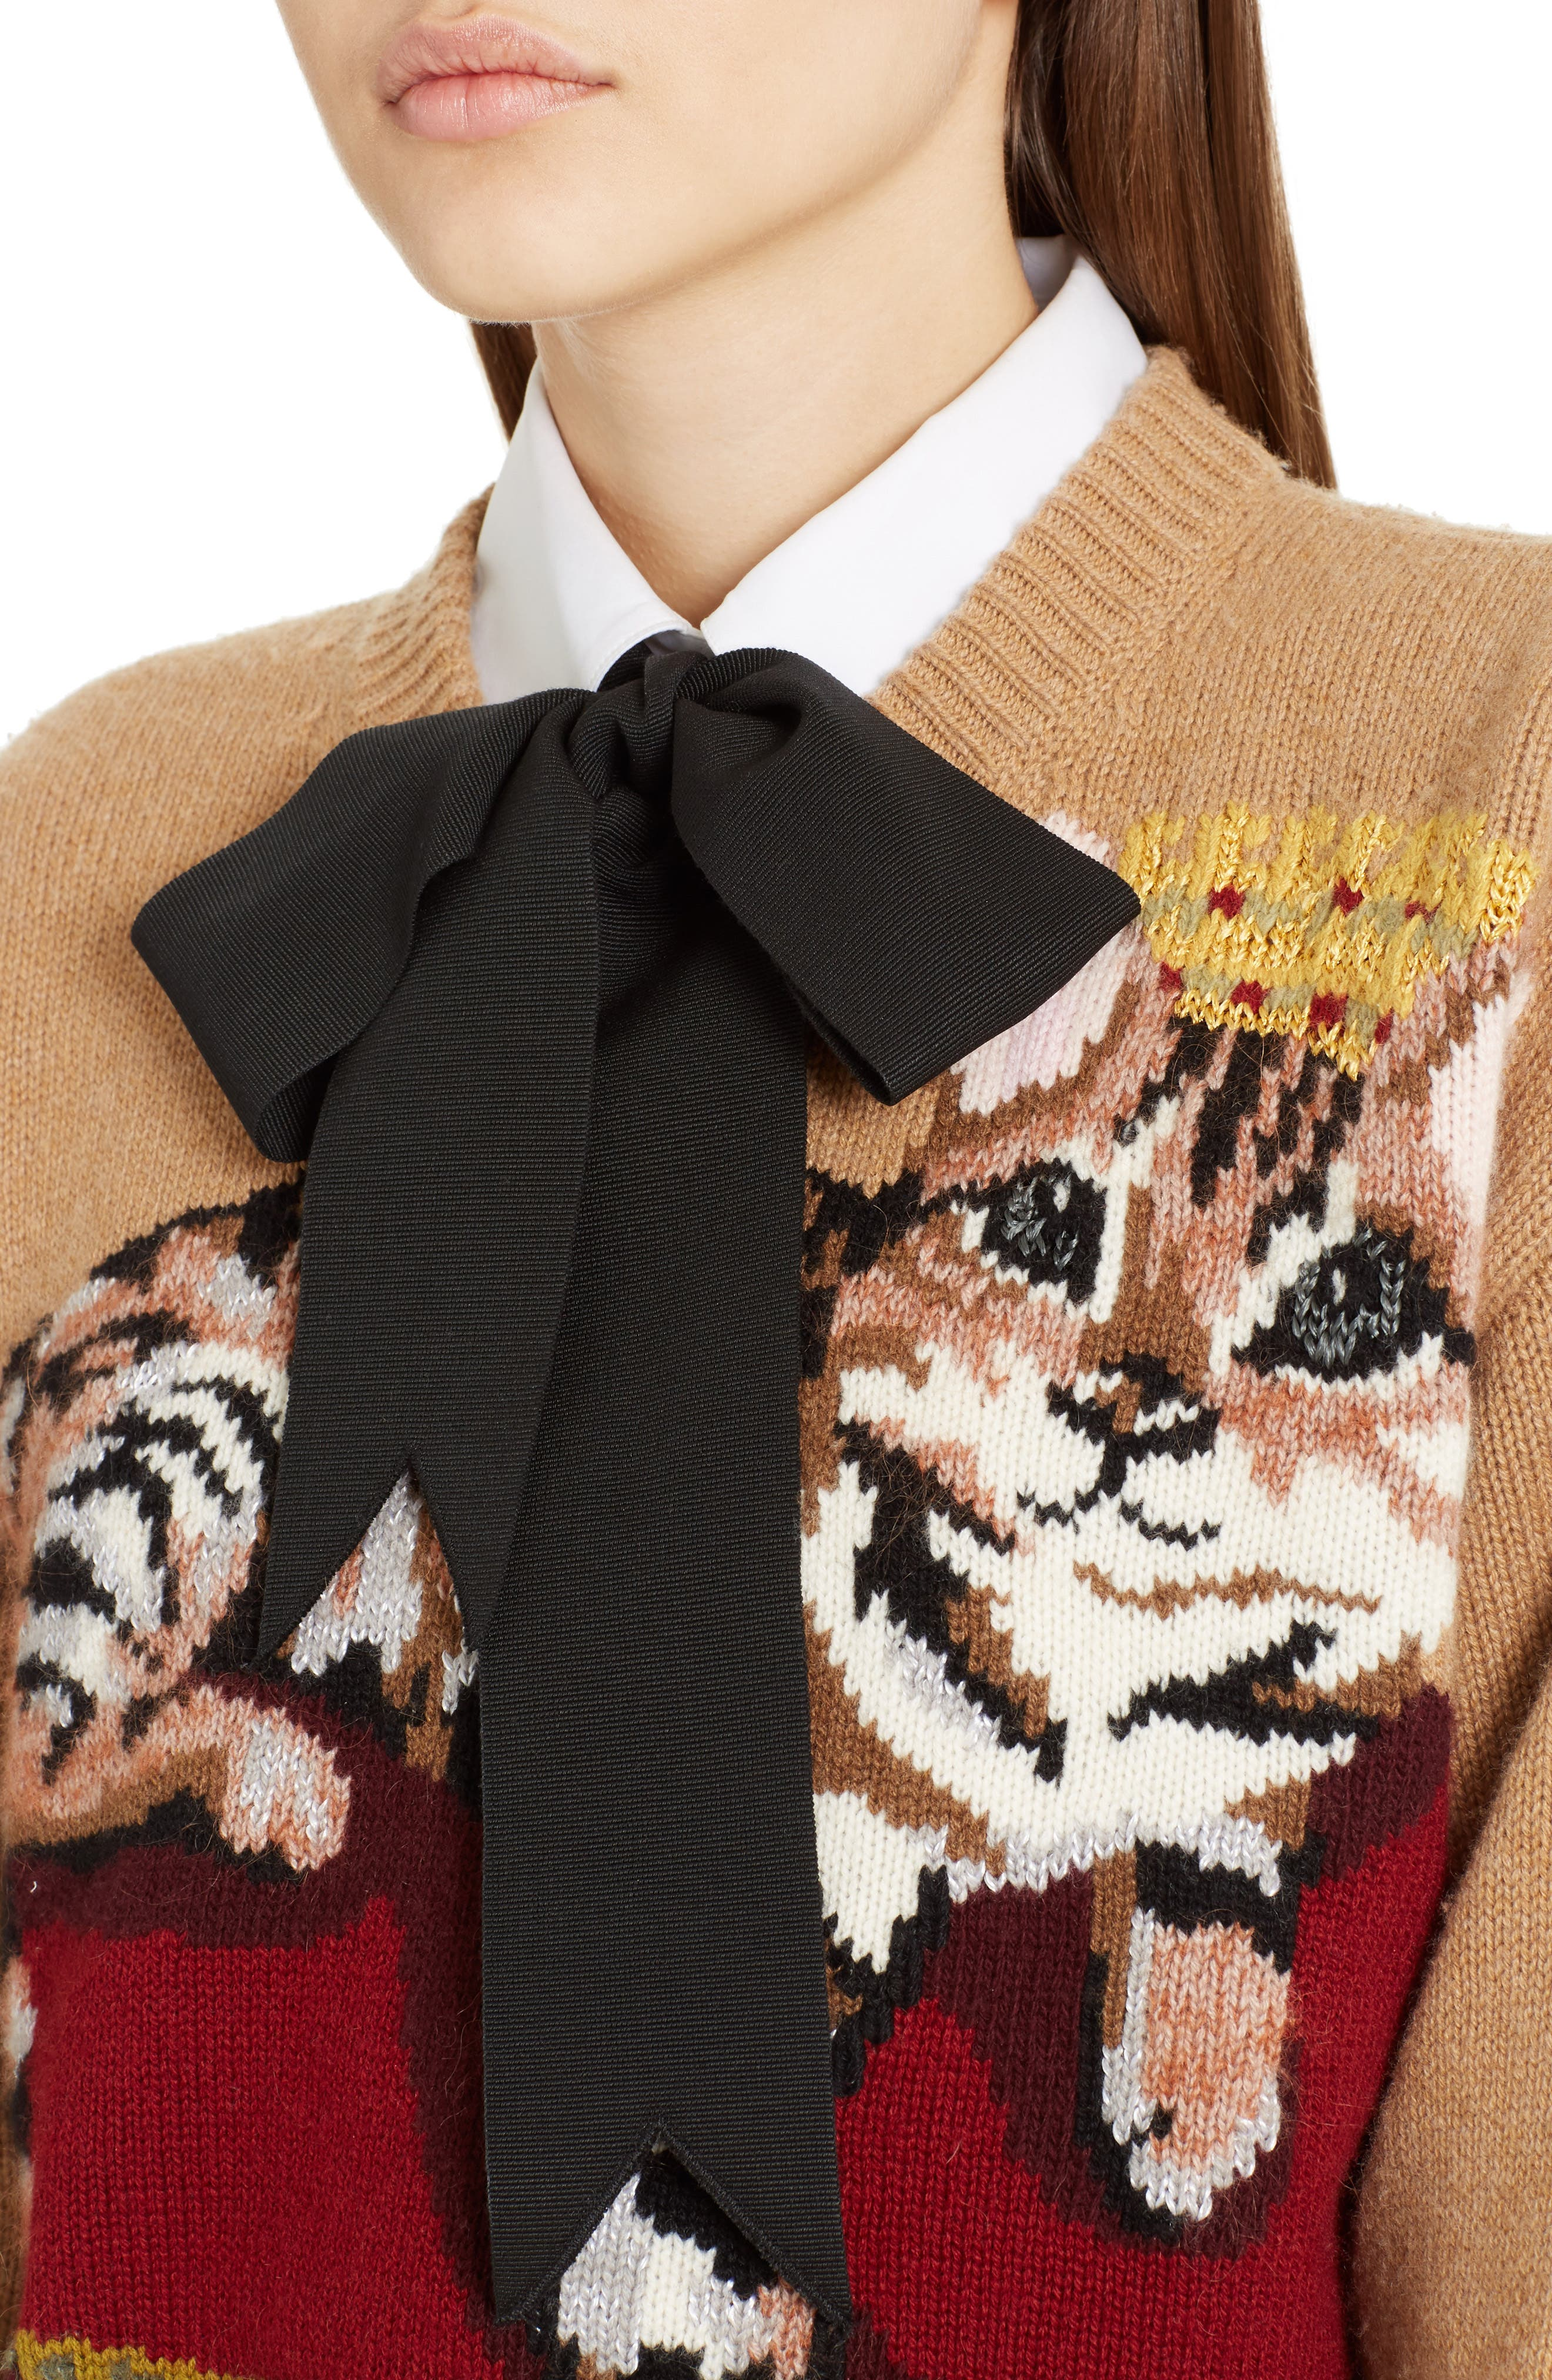 Cat Intarsia Cashmere, Wool & Mohair Blend Sweater,                             Alternate thumbnail 4, color,                             200